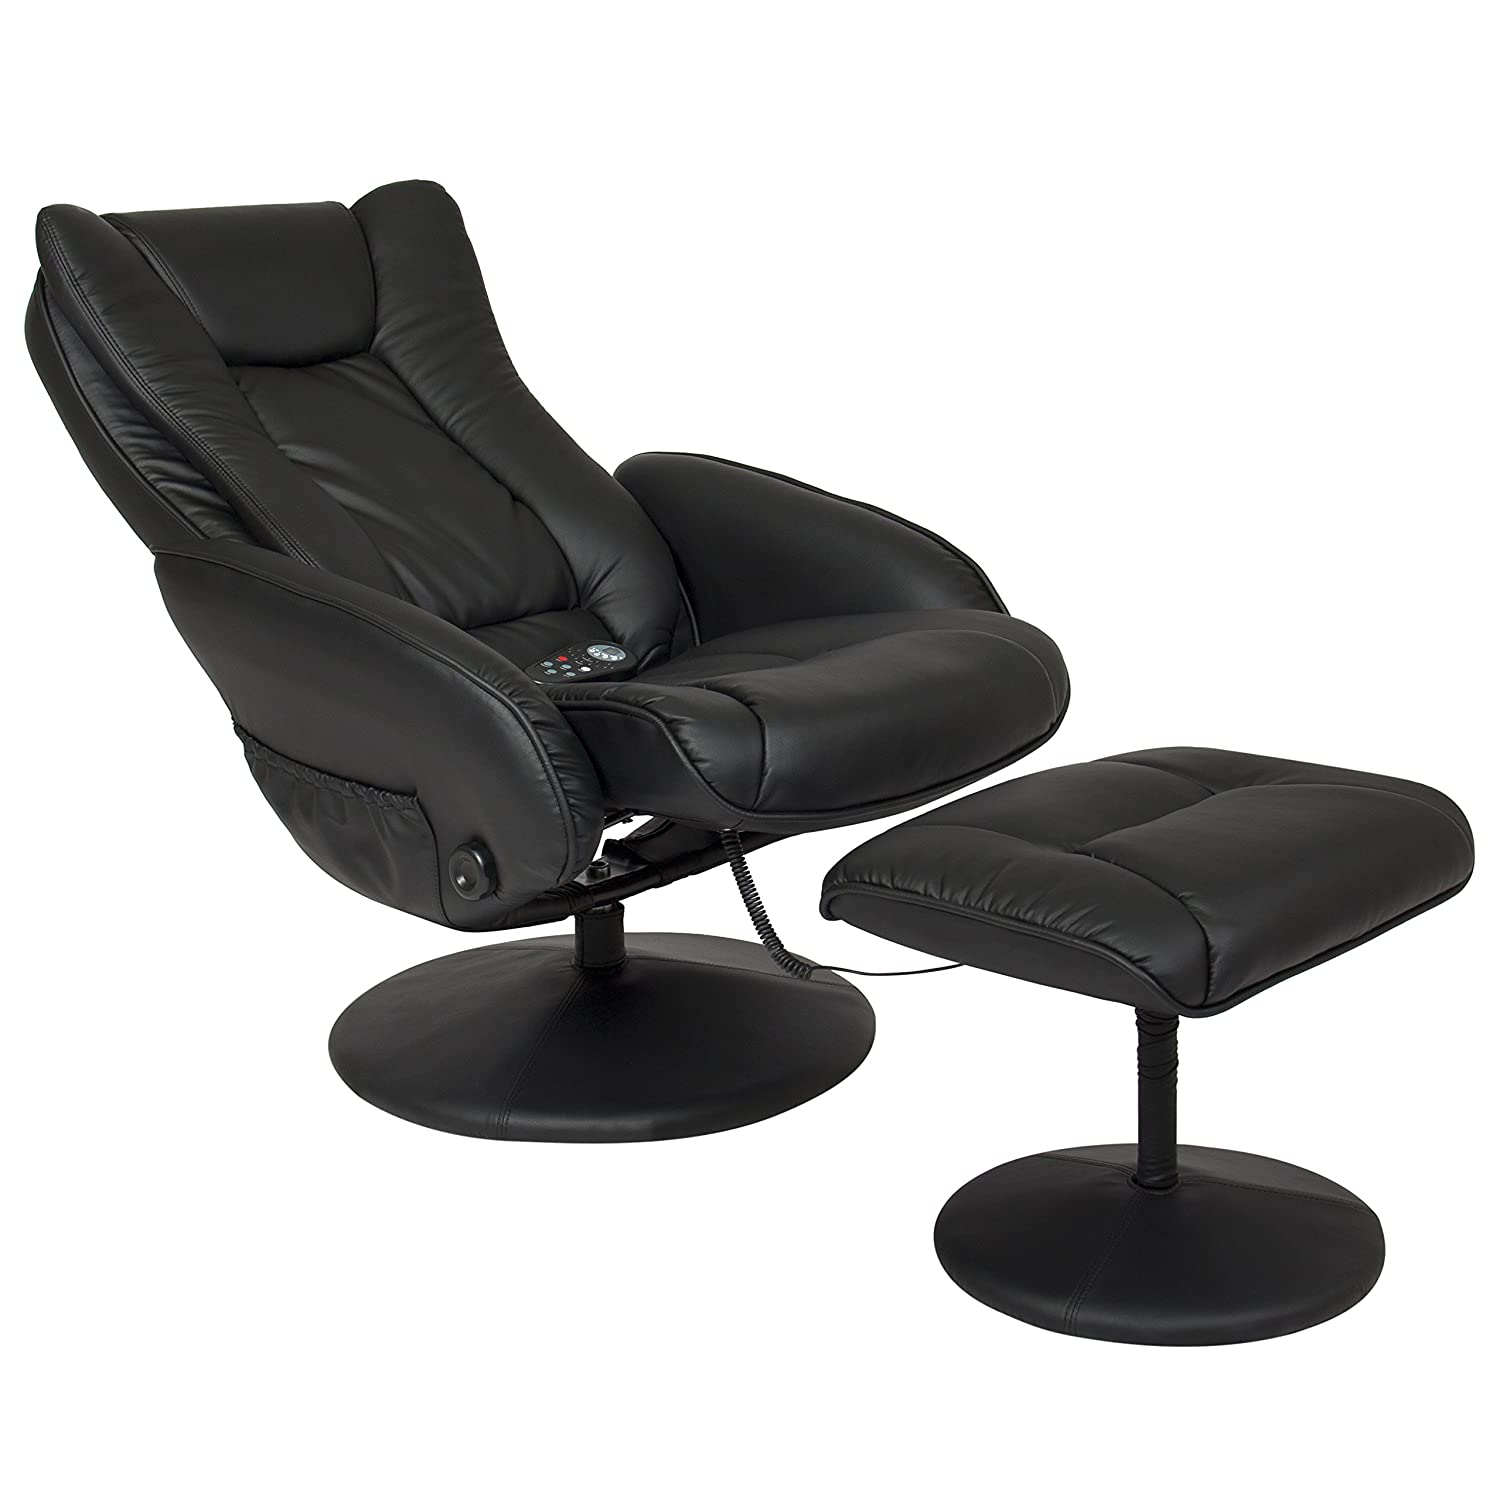 Amazon.com Best Choice Products PU Leather Massage Recliner Ottoman w/ Control 5 Heat u0026 Massage Modes 45lbs (Black) Home u0026 Kitchen  sc 1 st  Amazon.com & Amazon.com: Best Choice Products PU Leather Massage Recliner ... islam-shia.org